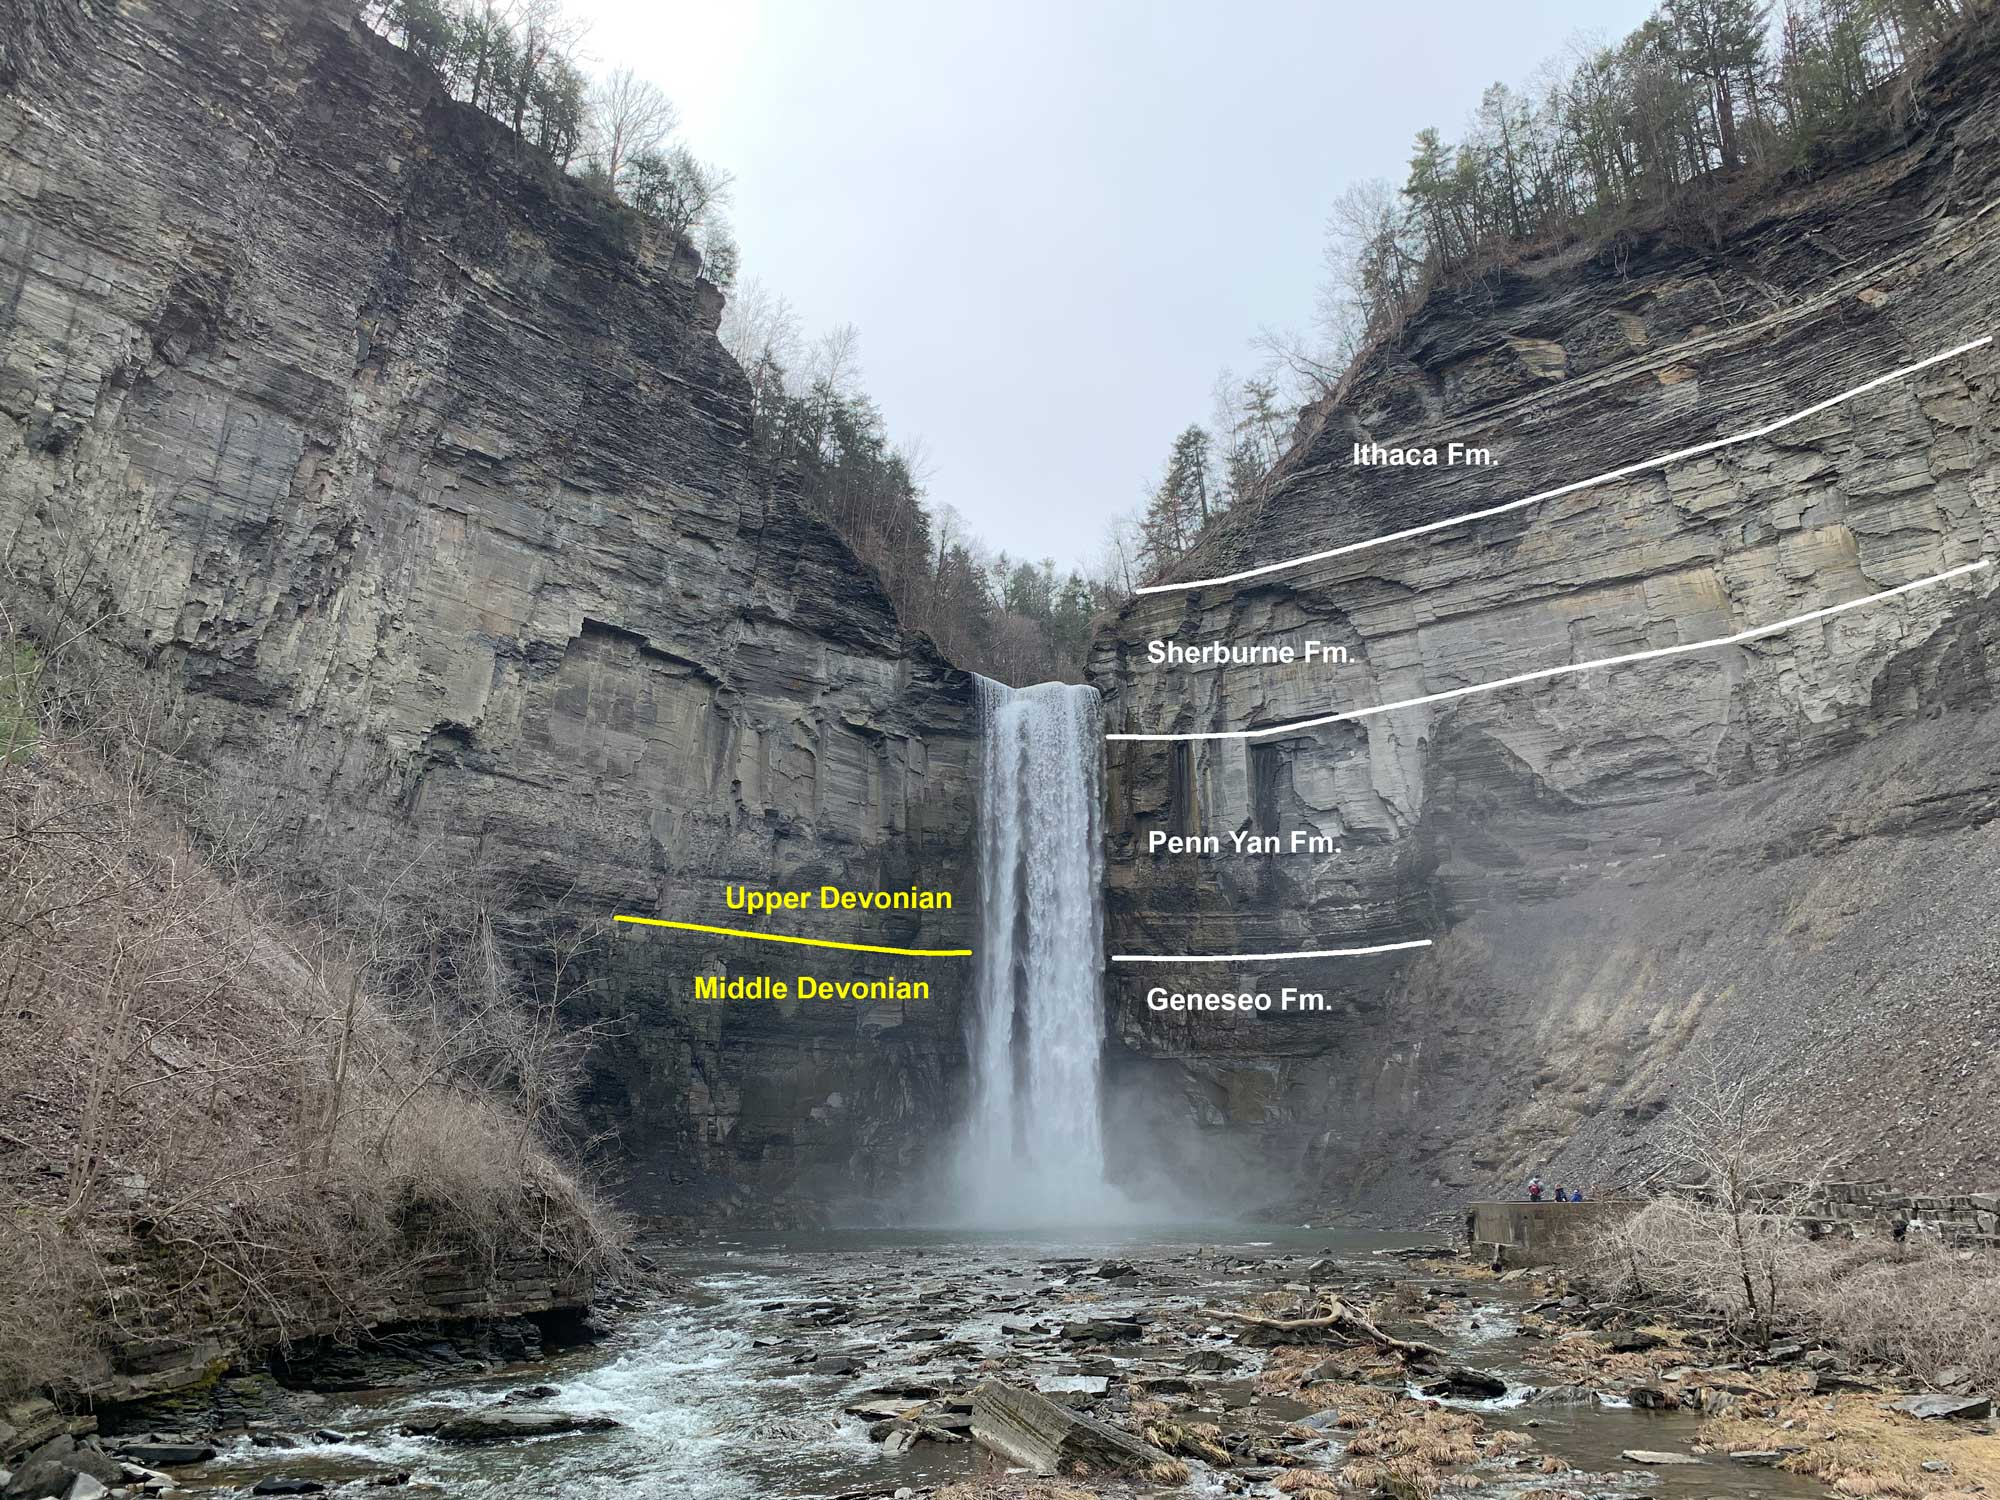 Photograph of Taughannock Falls with different strata labeled.